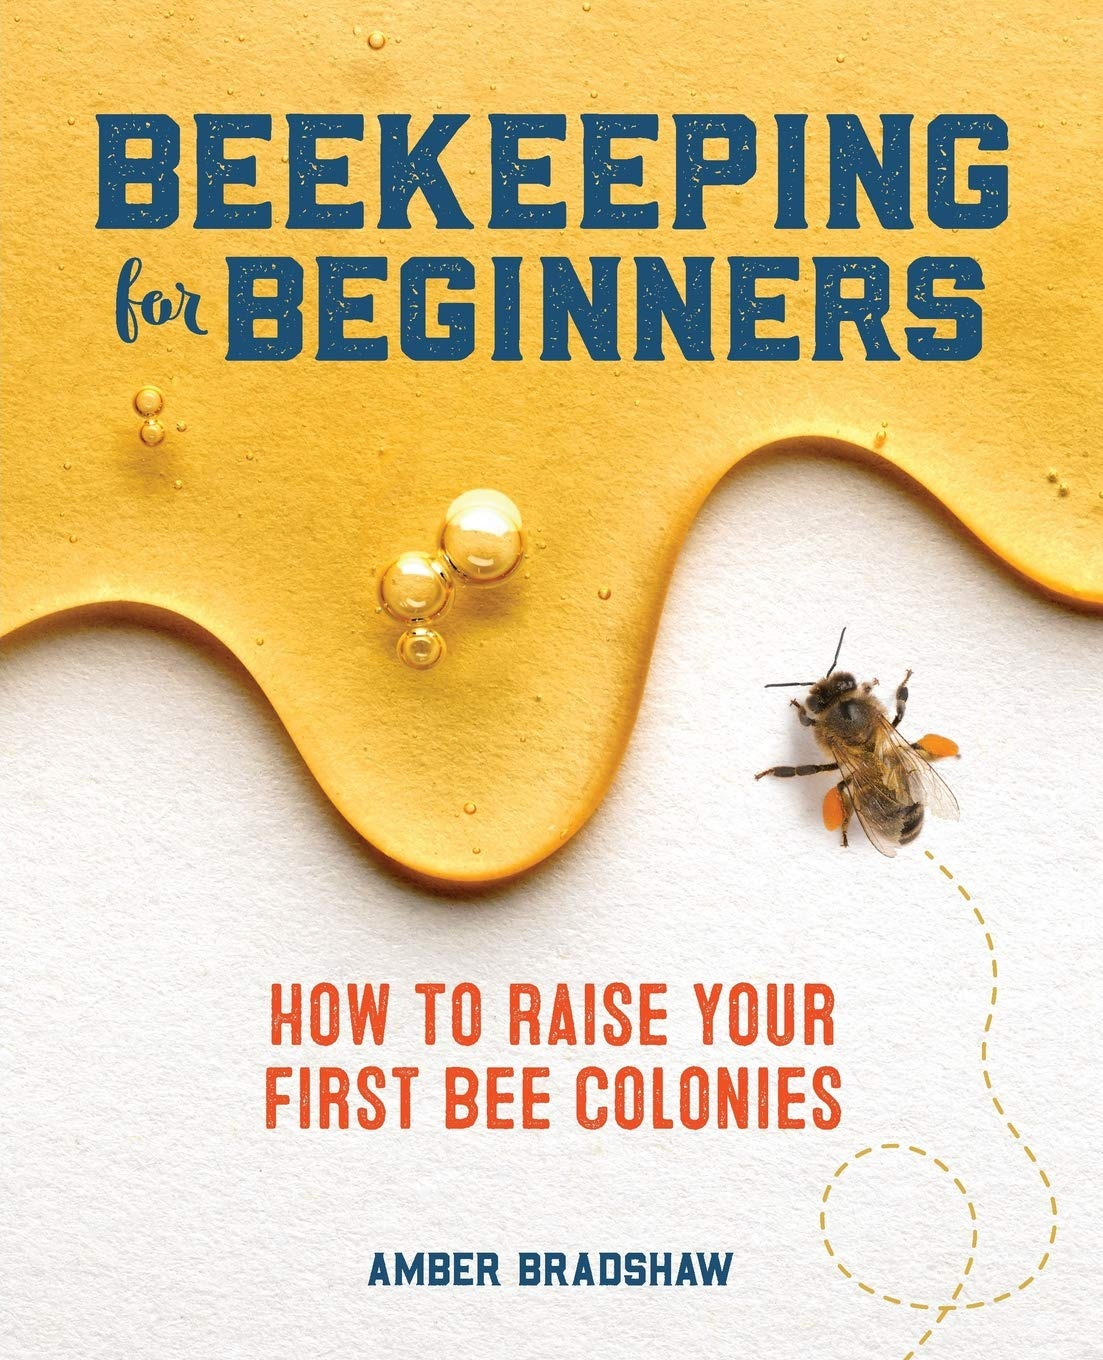 Beekeeping for Beginners: How To Raise Your First Bee Colonies